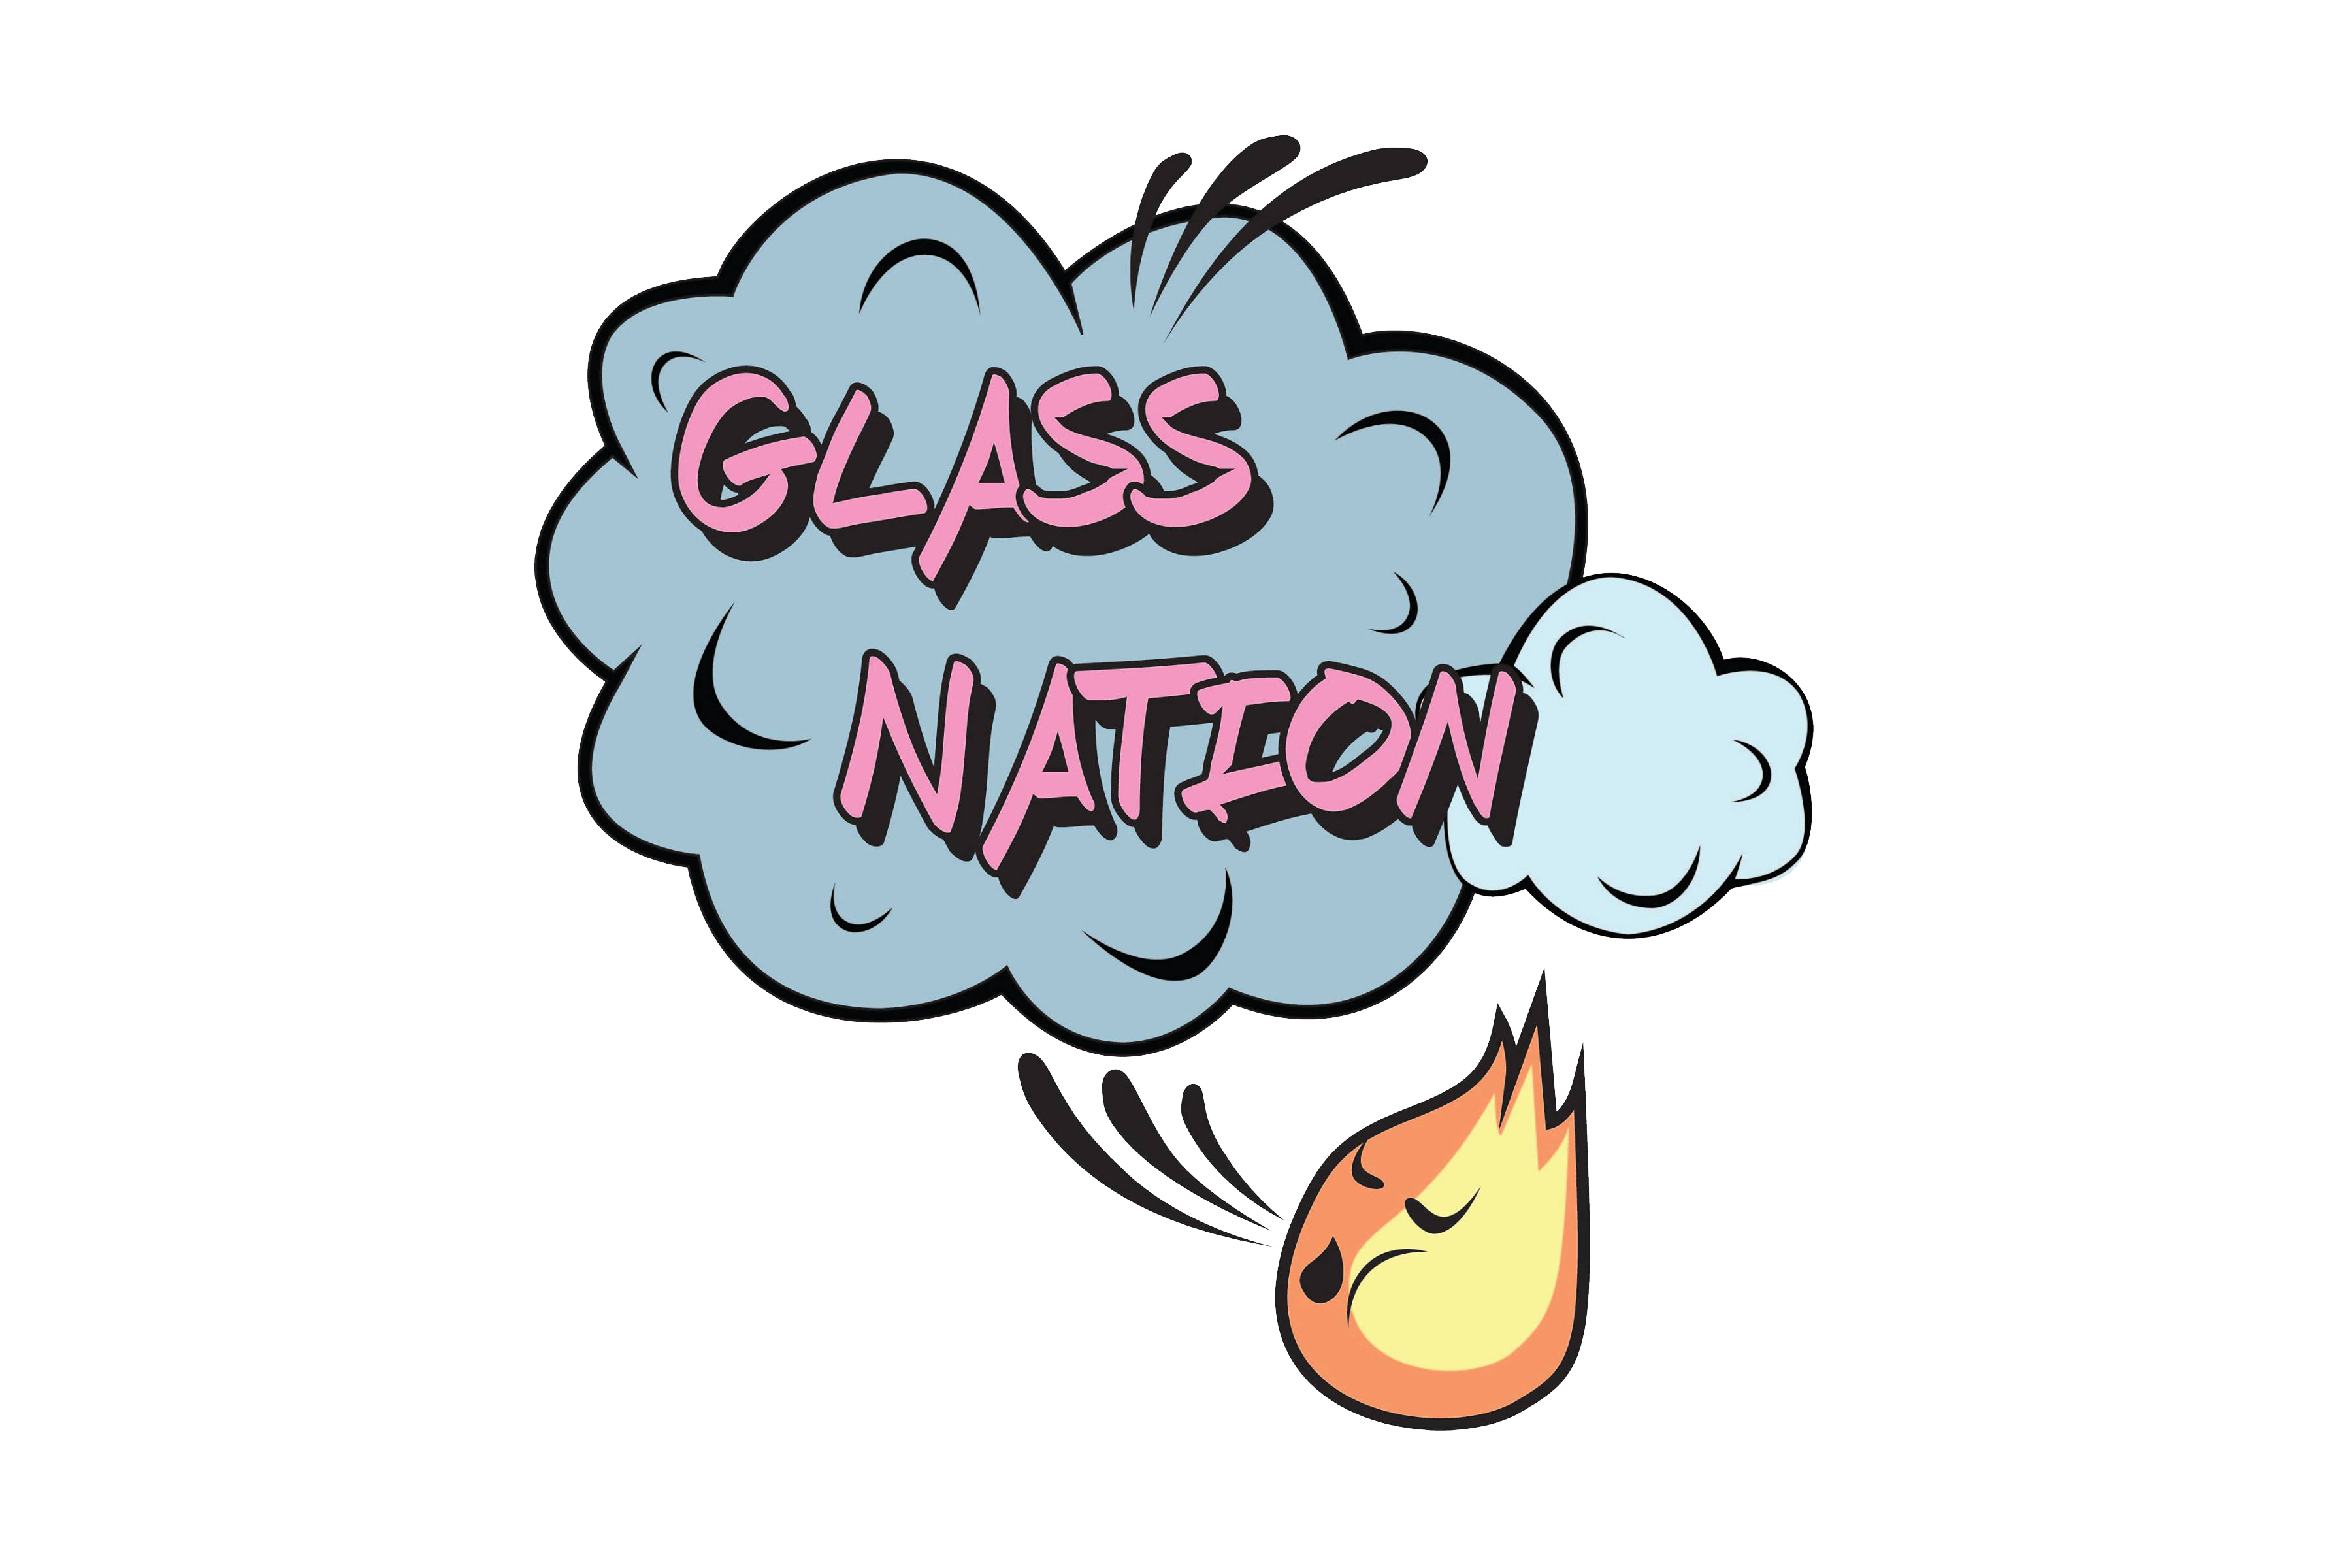 Marbles clipart glass marble. Nation